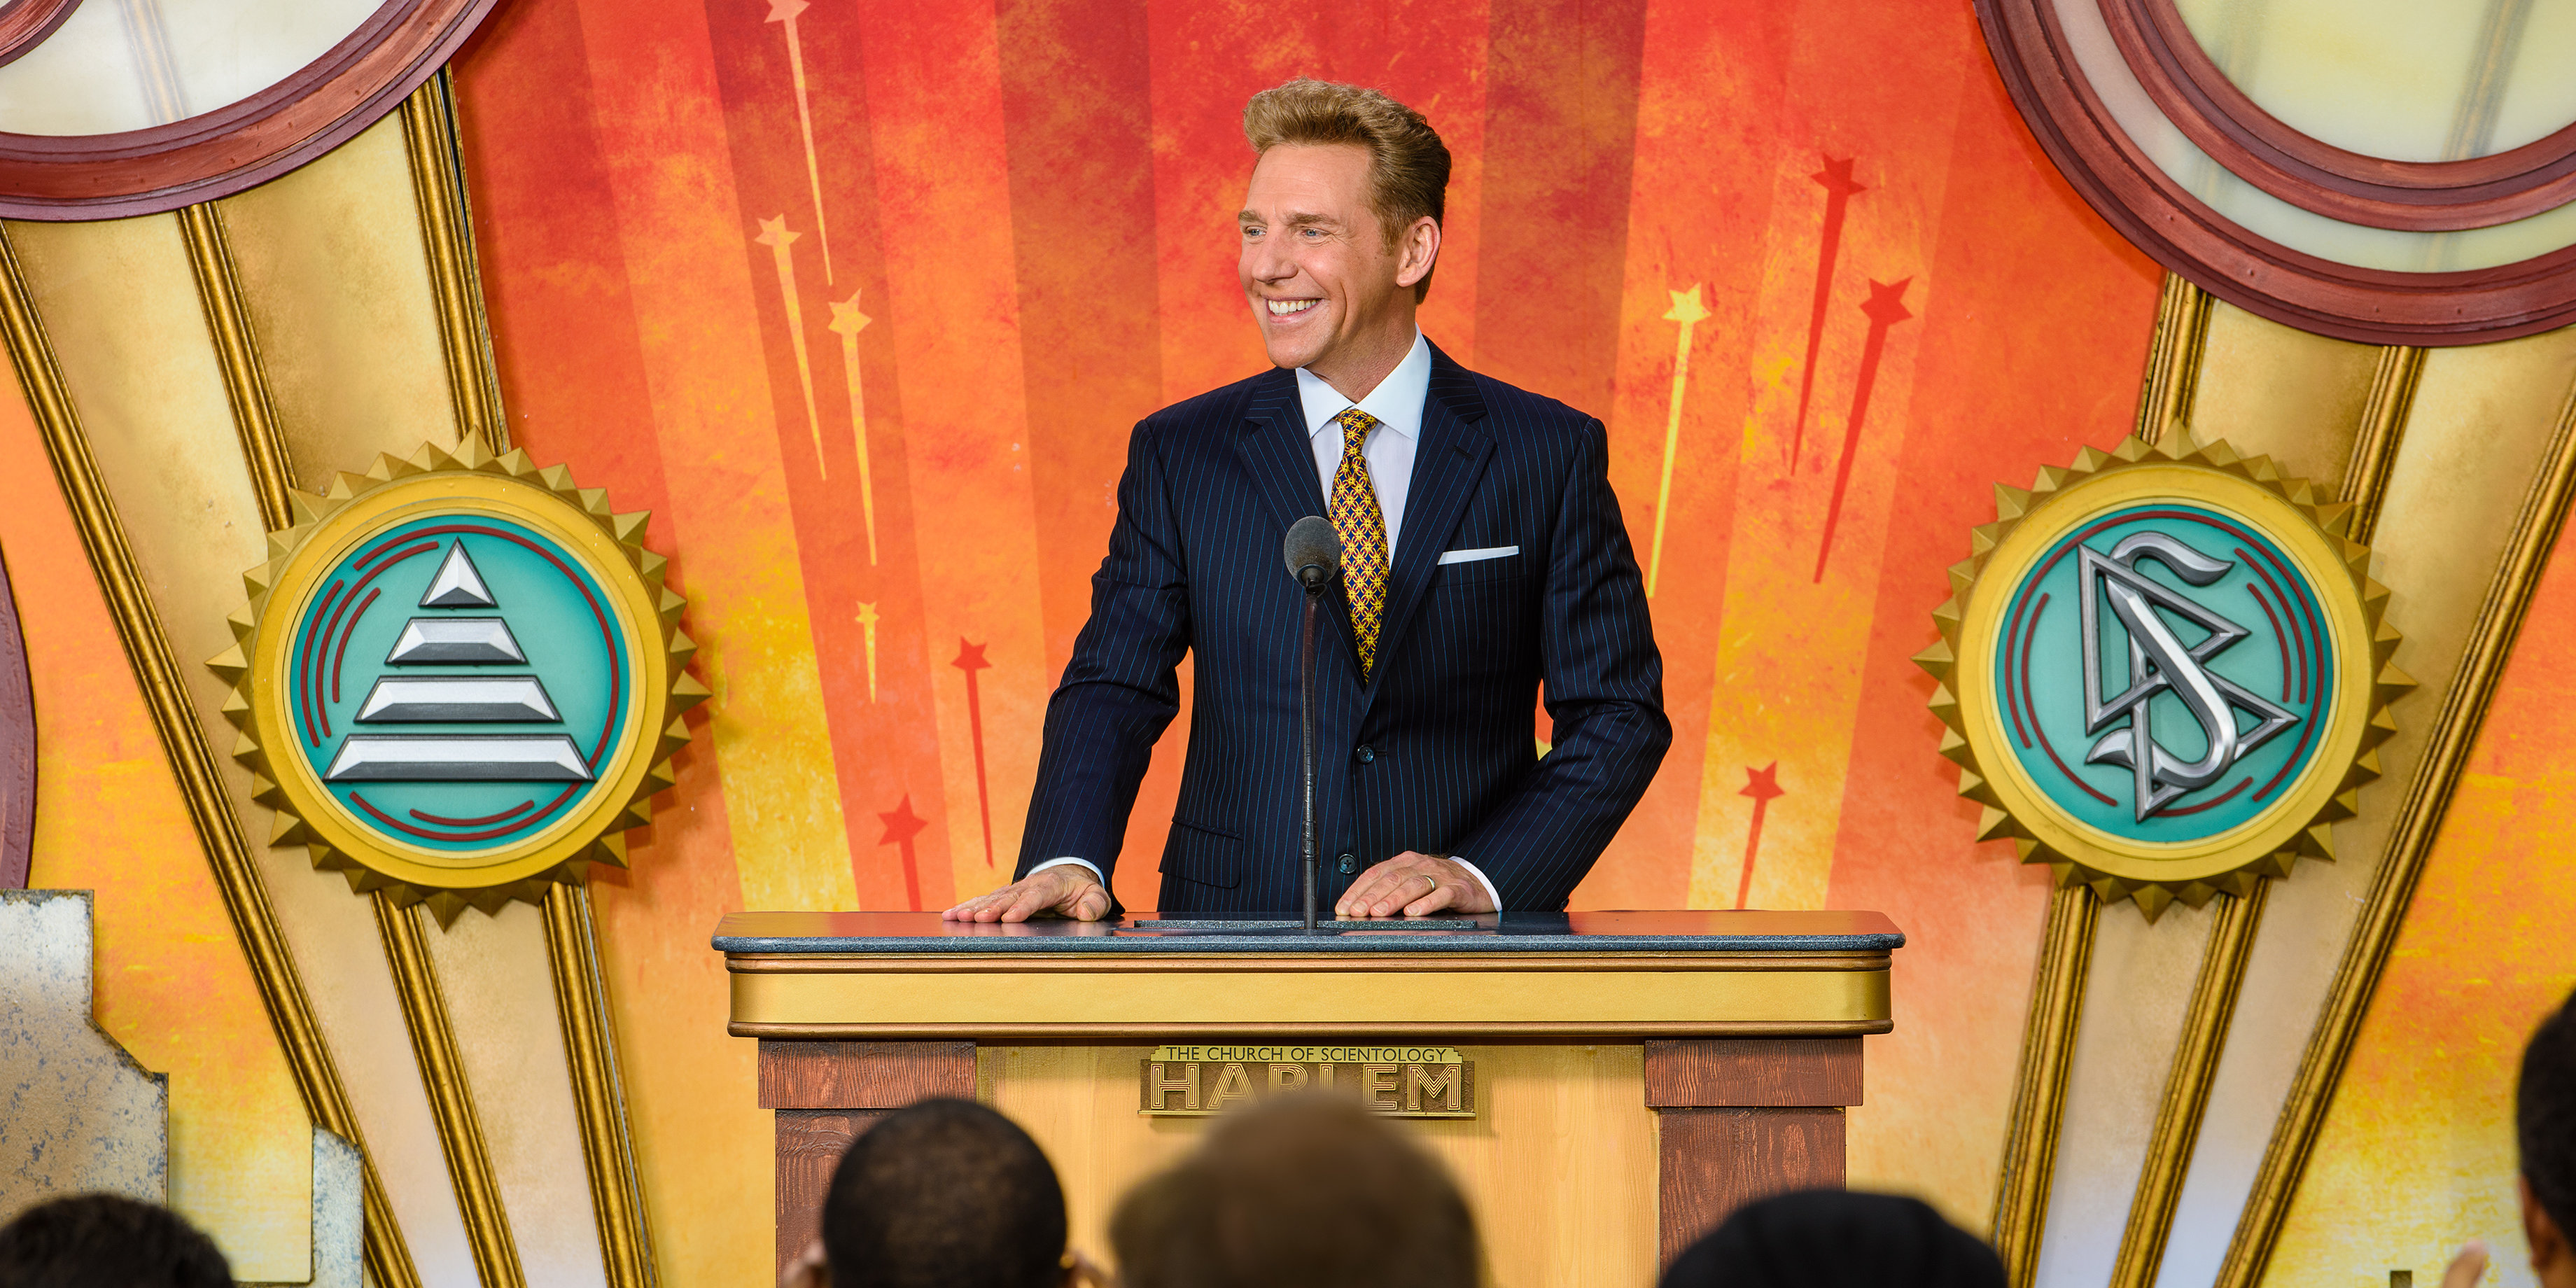 a history of the church of scientology 'scientology' accuses church leader david miscavige of physical long history of anti-semitic comments and actions, and a shocking history of racist comments the church further refuted the claims in a entertainment industry and the church of scientology.